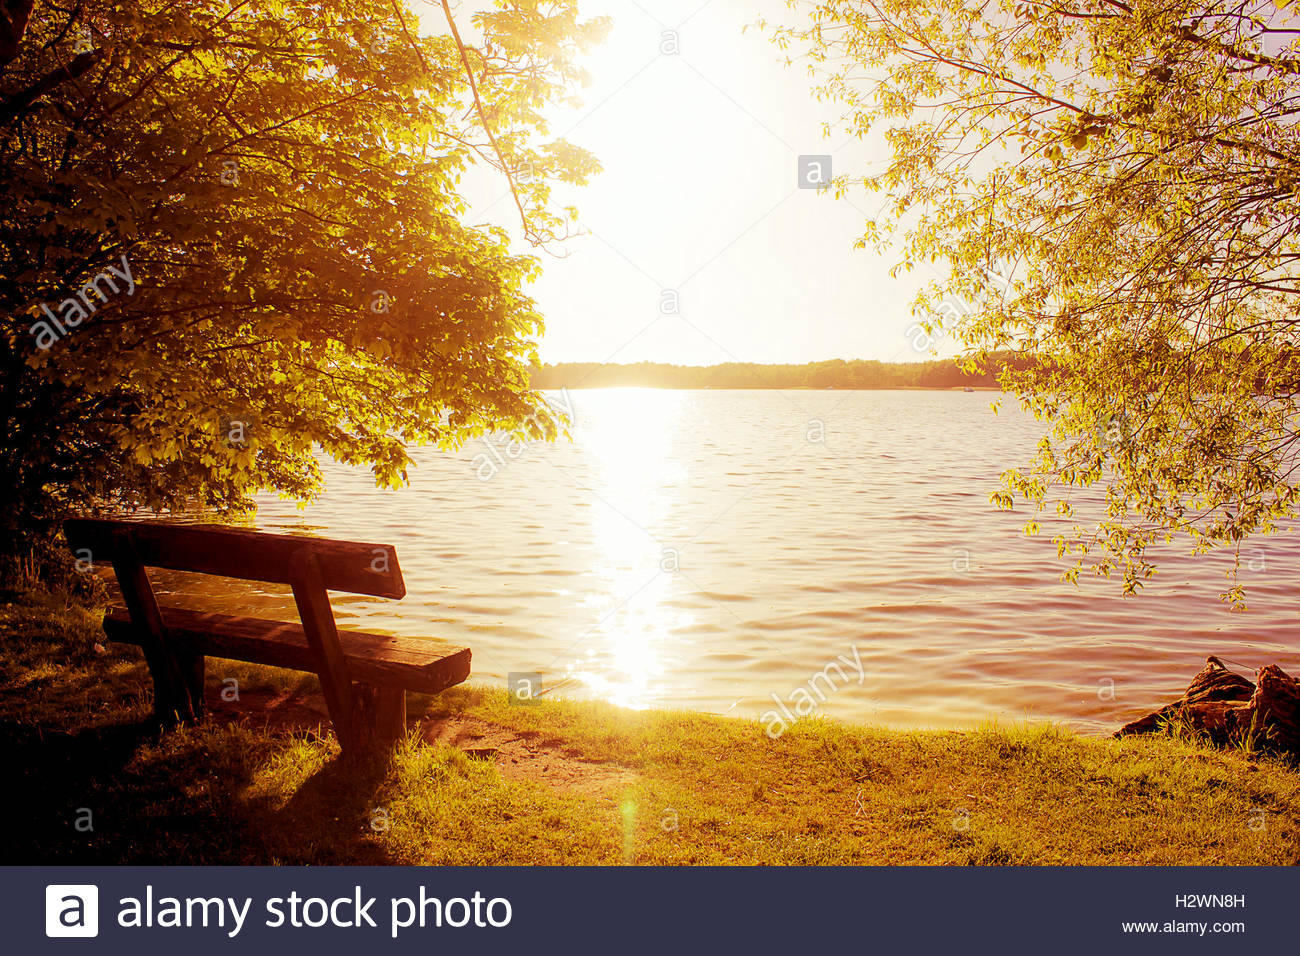 wooden park bench with view under golden morning sunlight tranquil stock photo 122267393 alamy. Black Bedroom Furniture Sets. Home Design Ideas